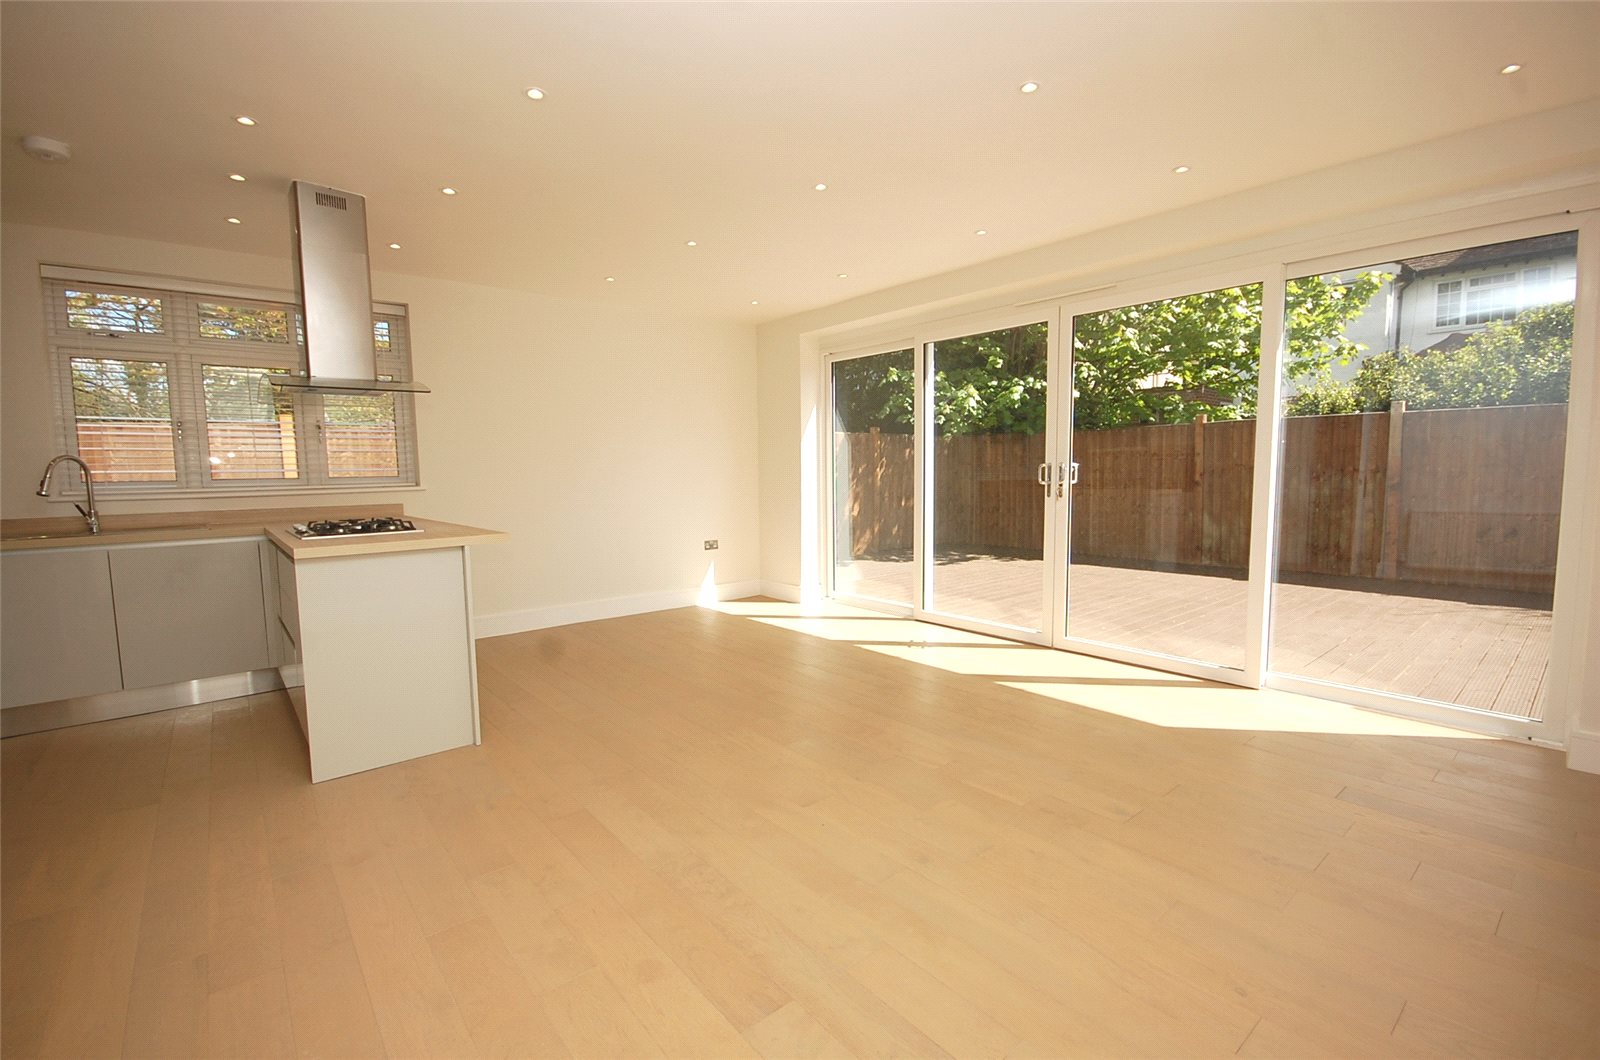 3 Bedrooms Flat for sale in The Drive Finchley London N3